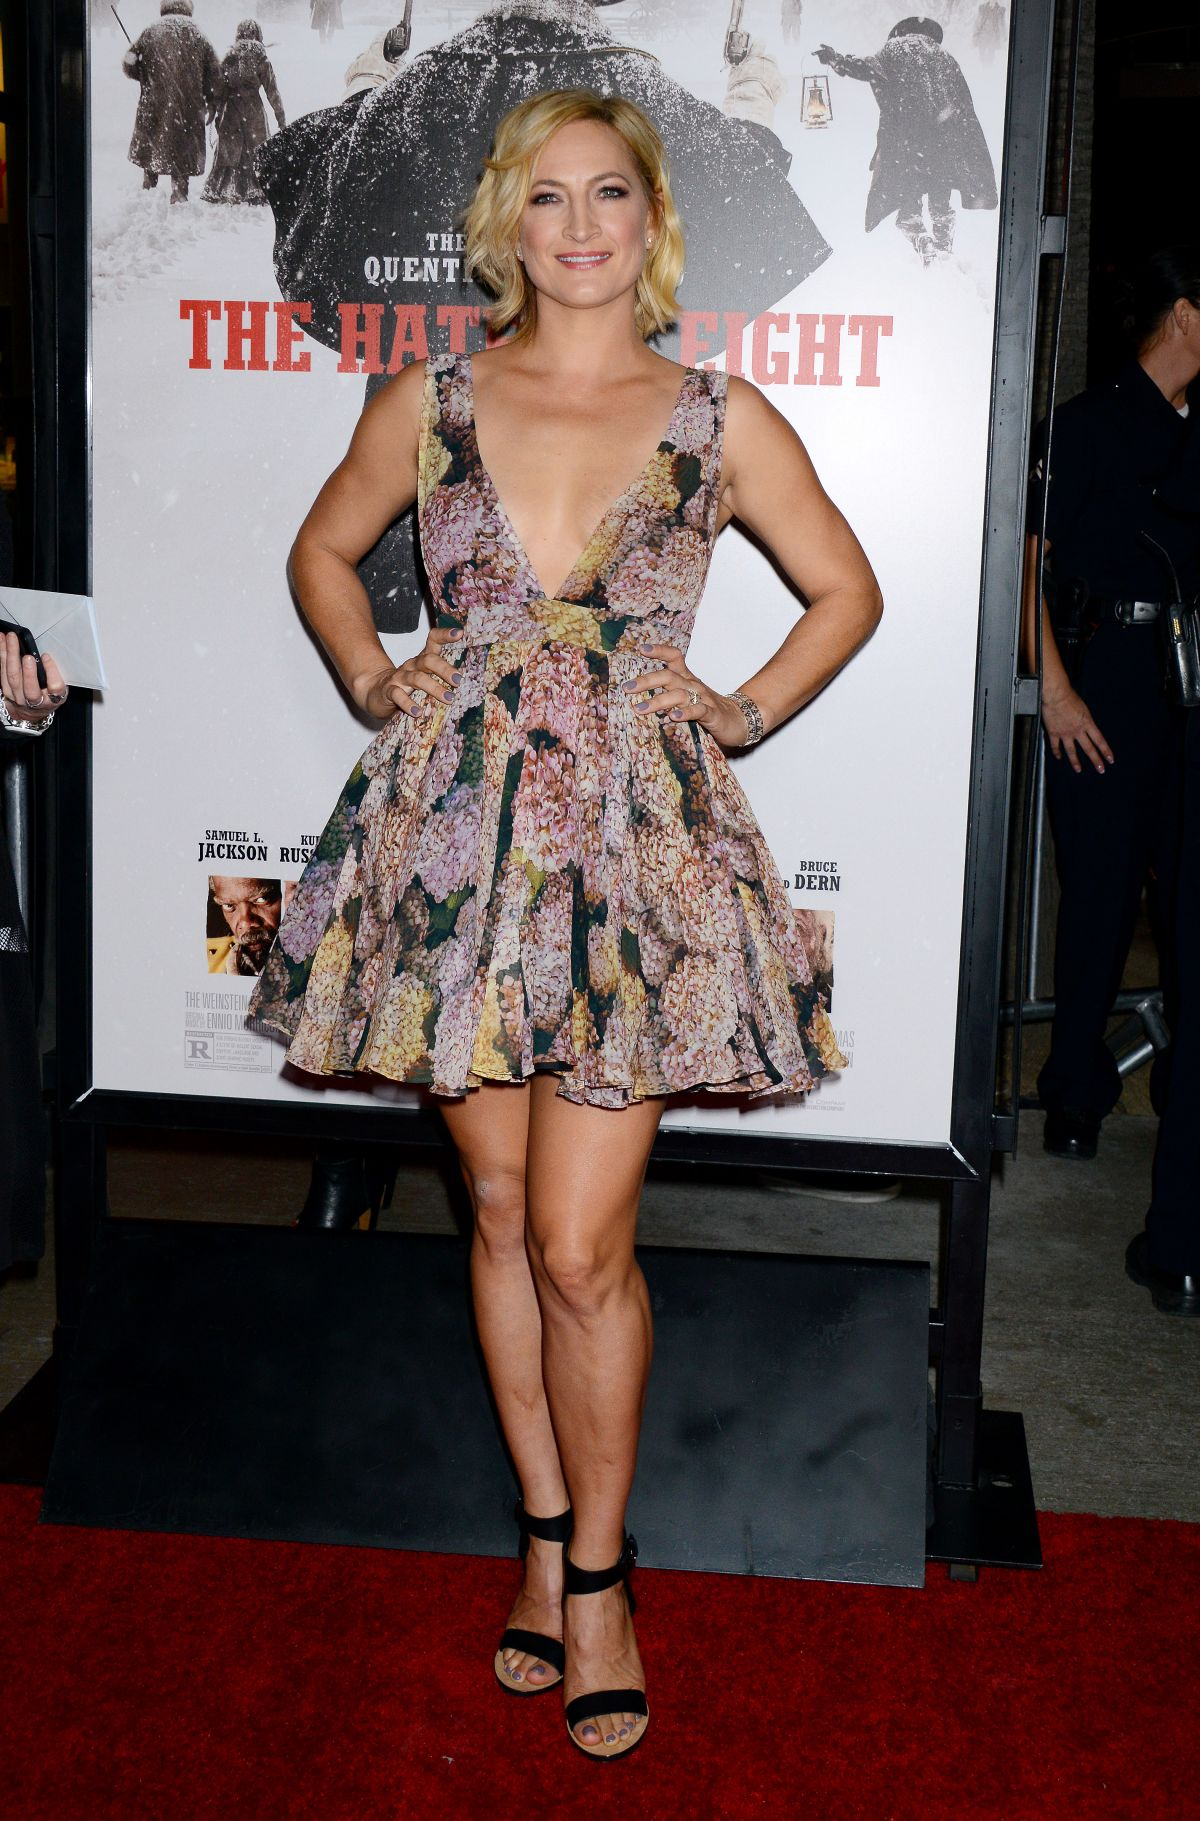 Zoe Bell At Premiere Of 'The Hateful Eight' In Los Angeles ...